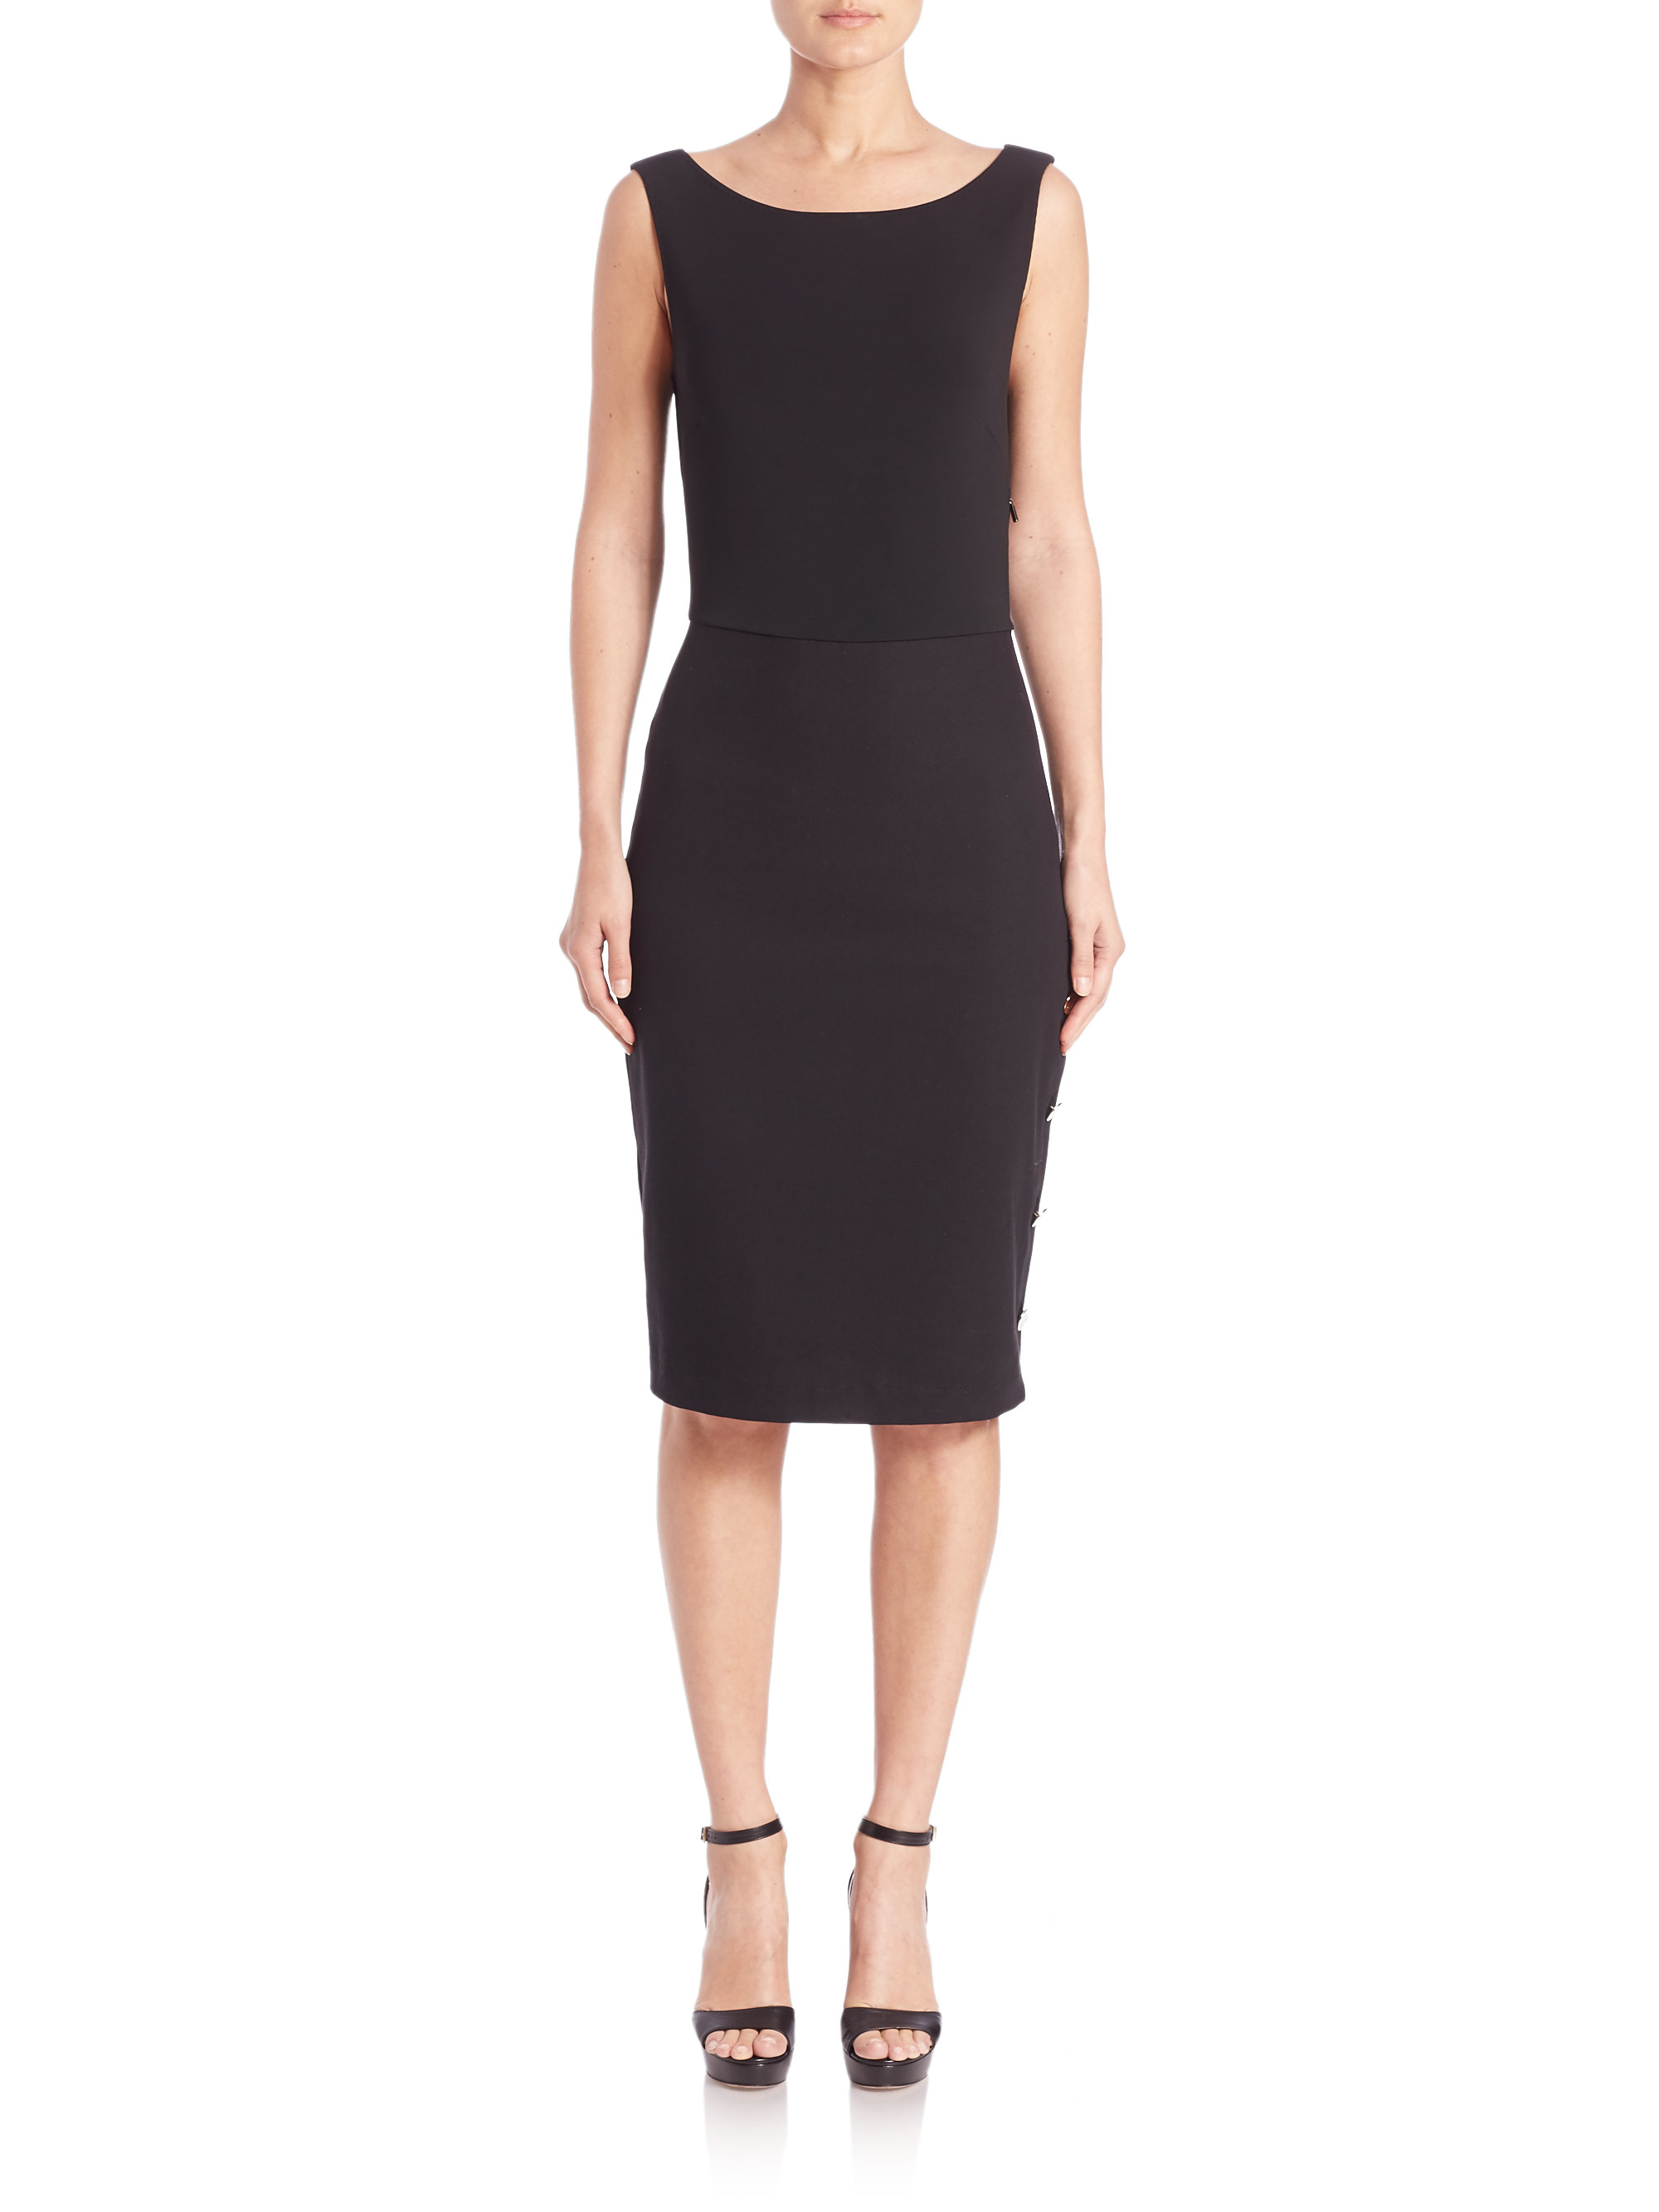 Lyst Max Mara Bassano Sleeveless Dress In Black